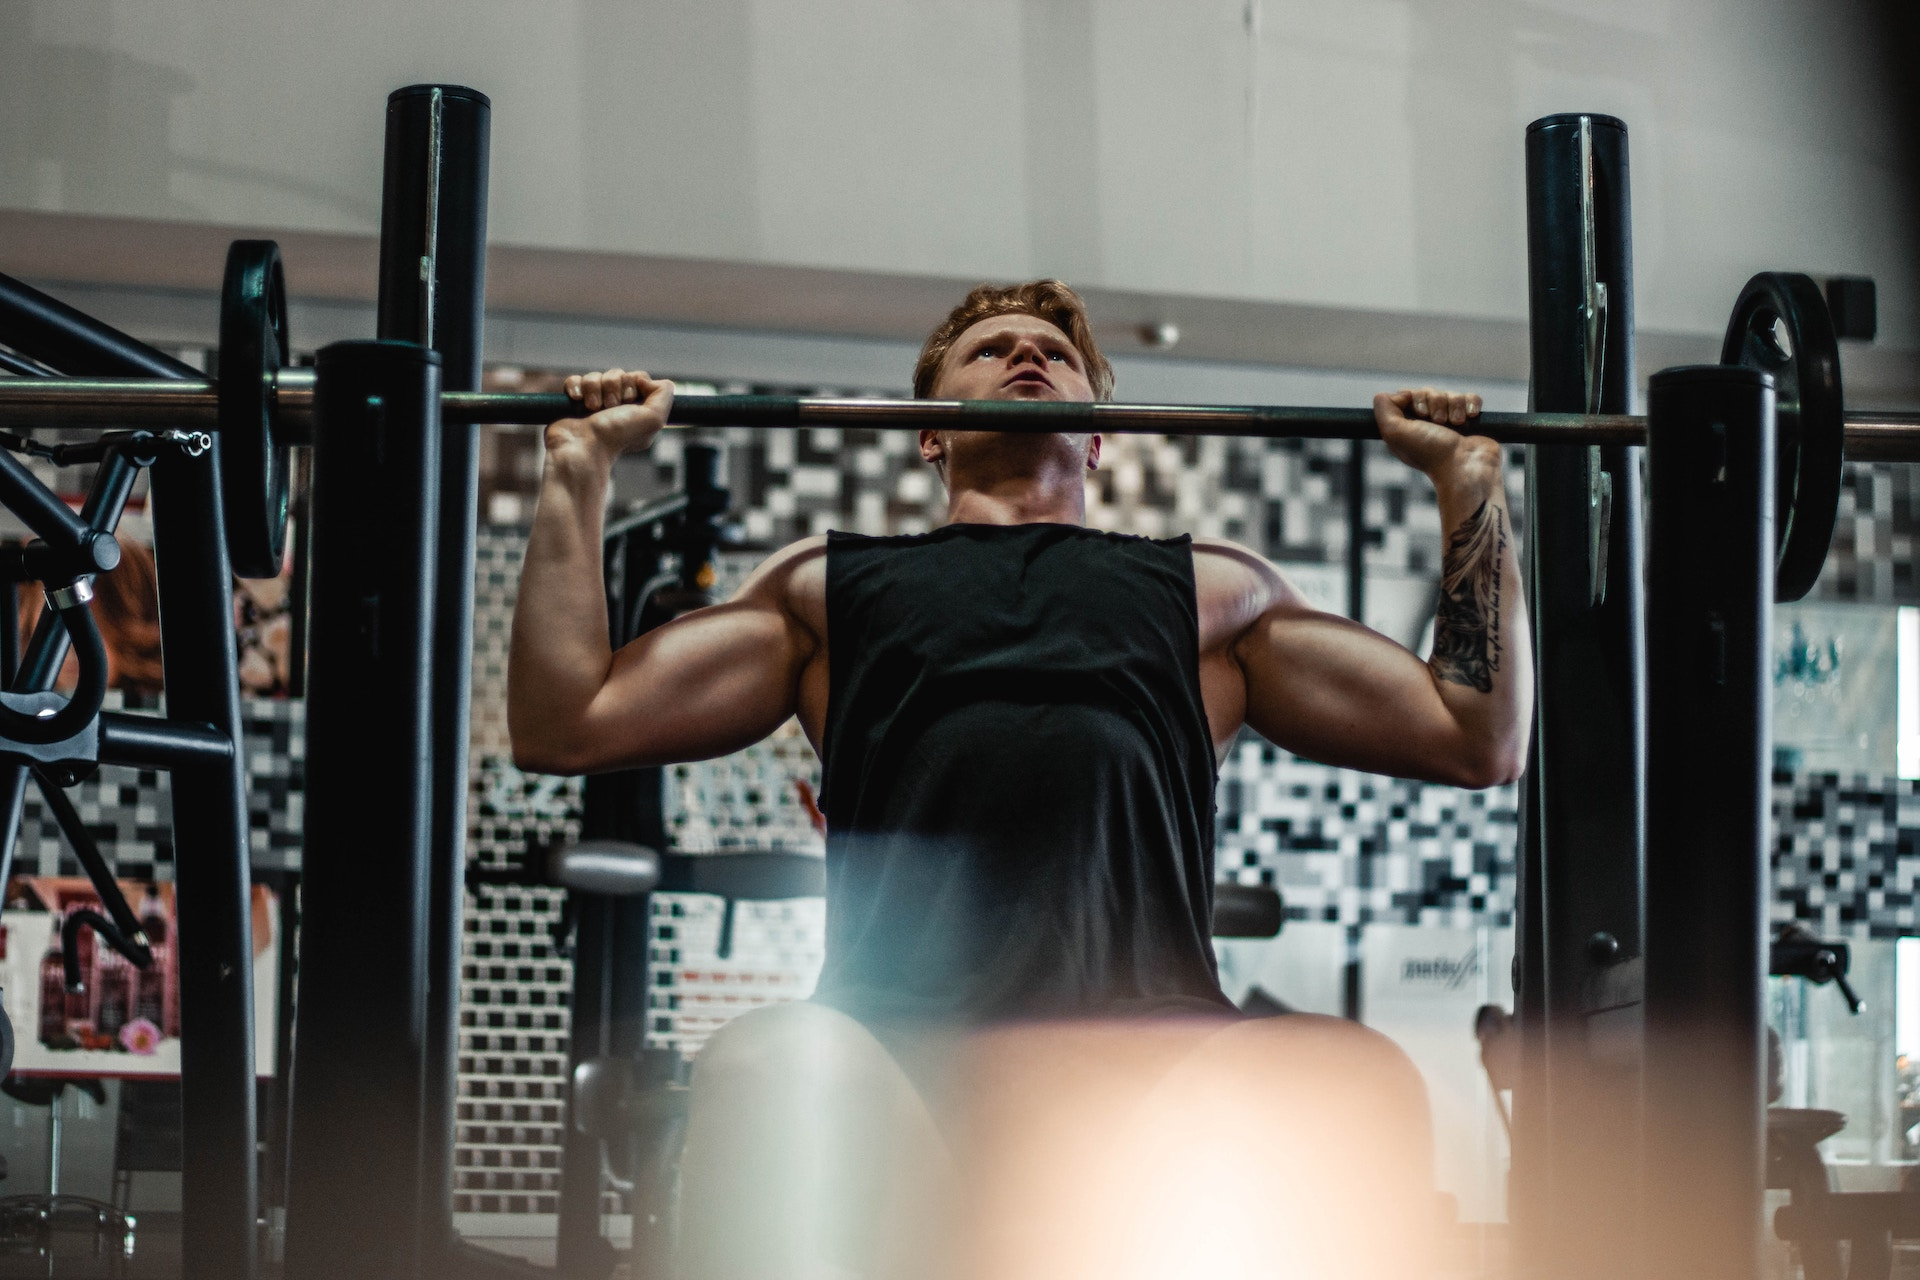 4 SURPRISING BENEFITS OF COMPOUND EXERCISES (#2 IS AWESOME)